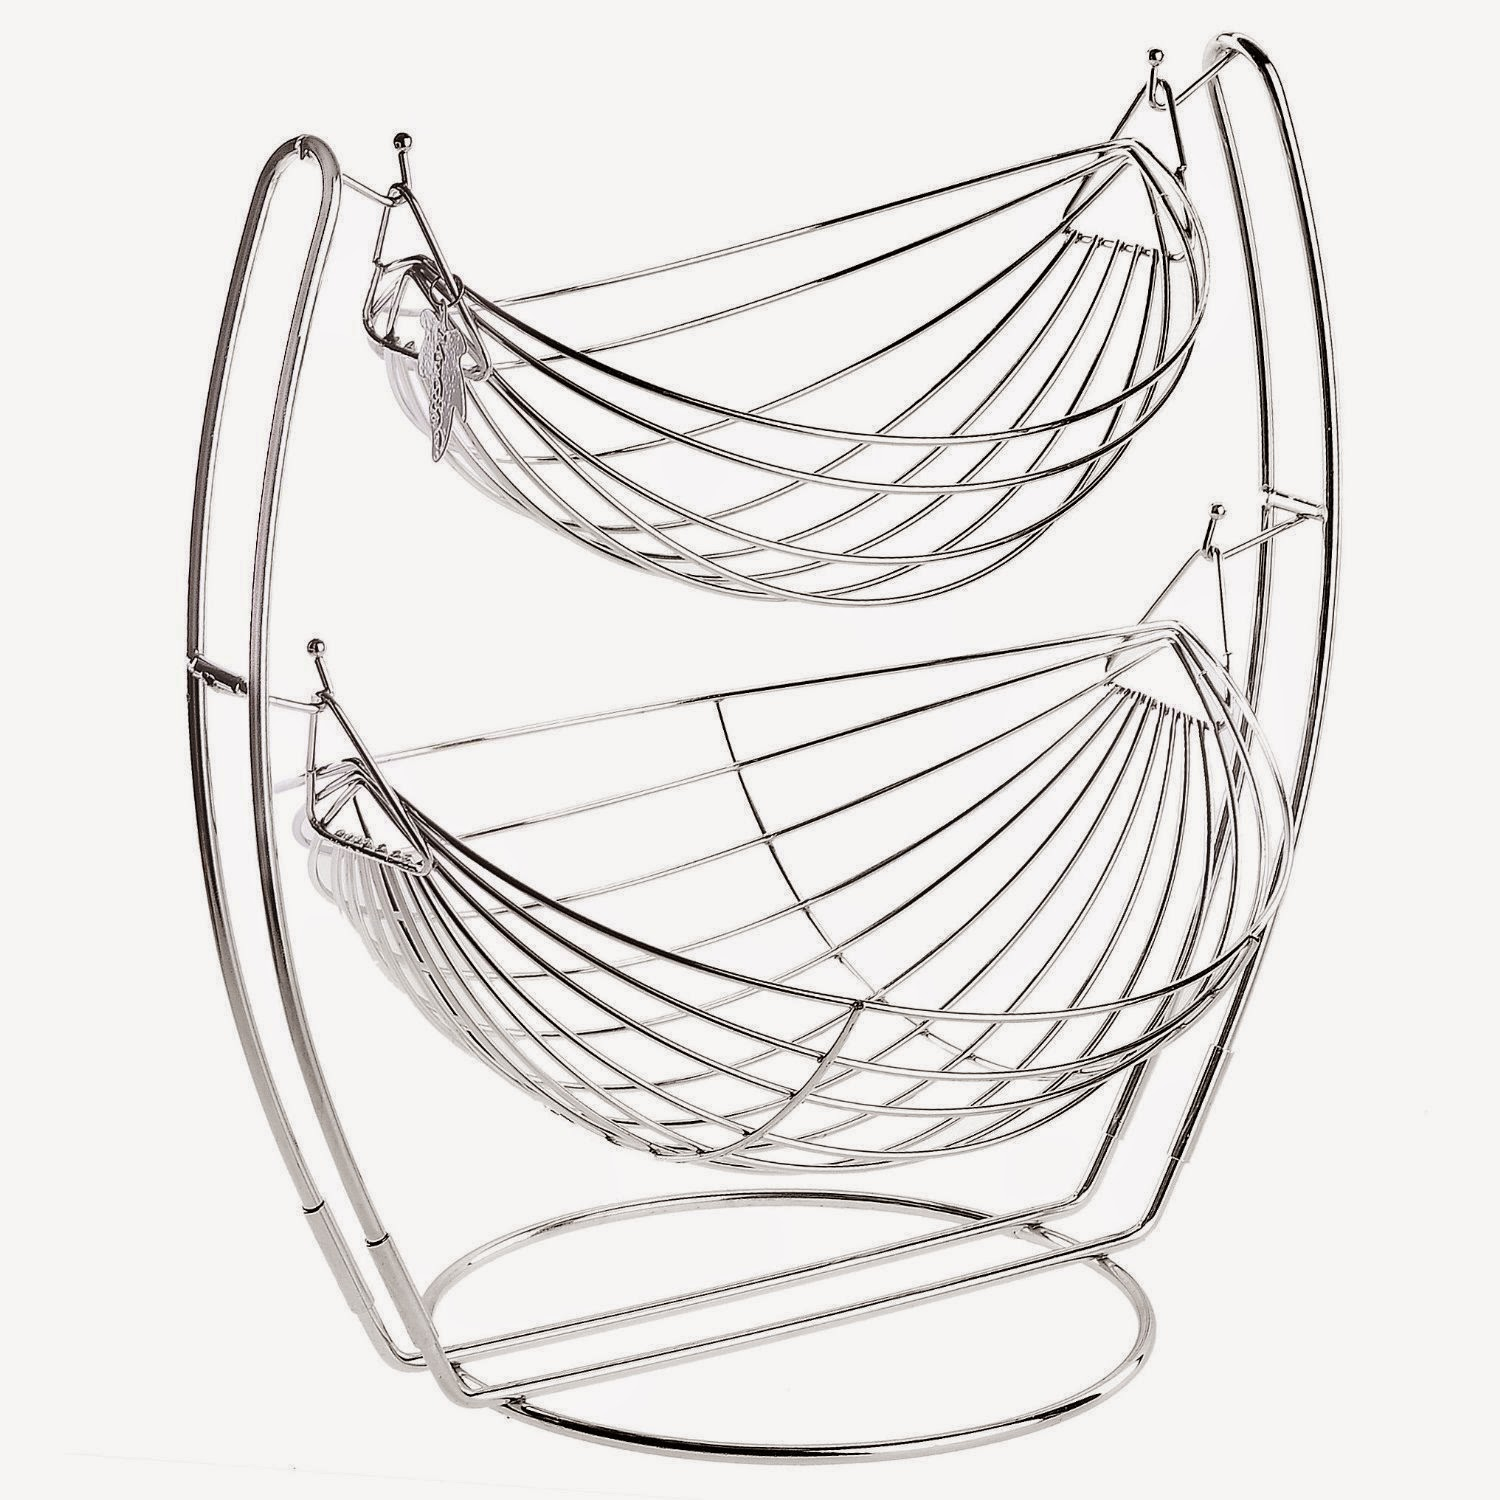 Wire Fruit Bowls Fruit Bowls Drawing At Getdrawings Free For Personal Use